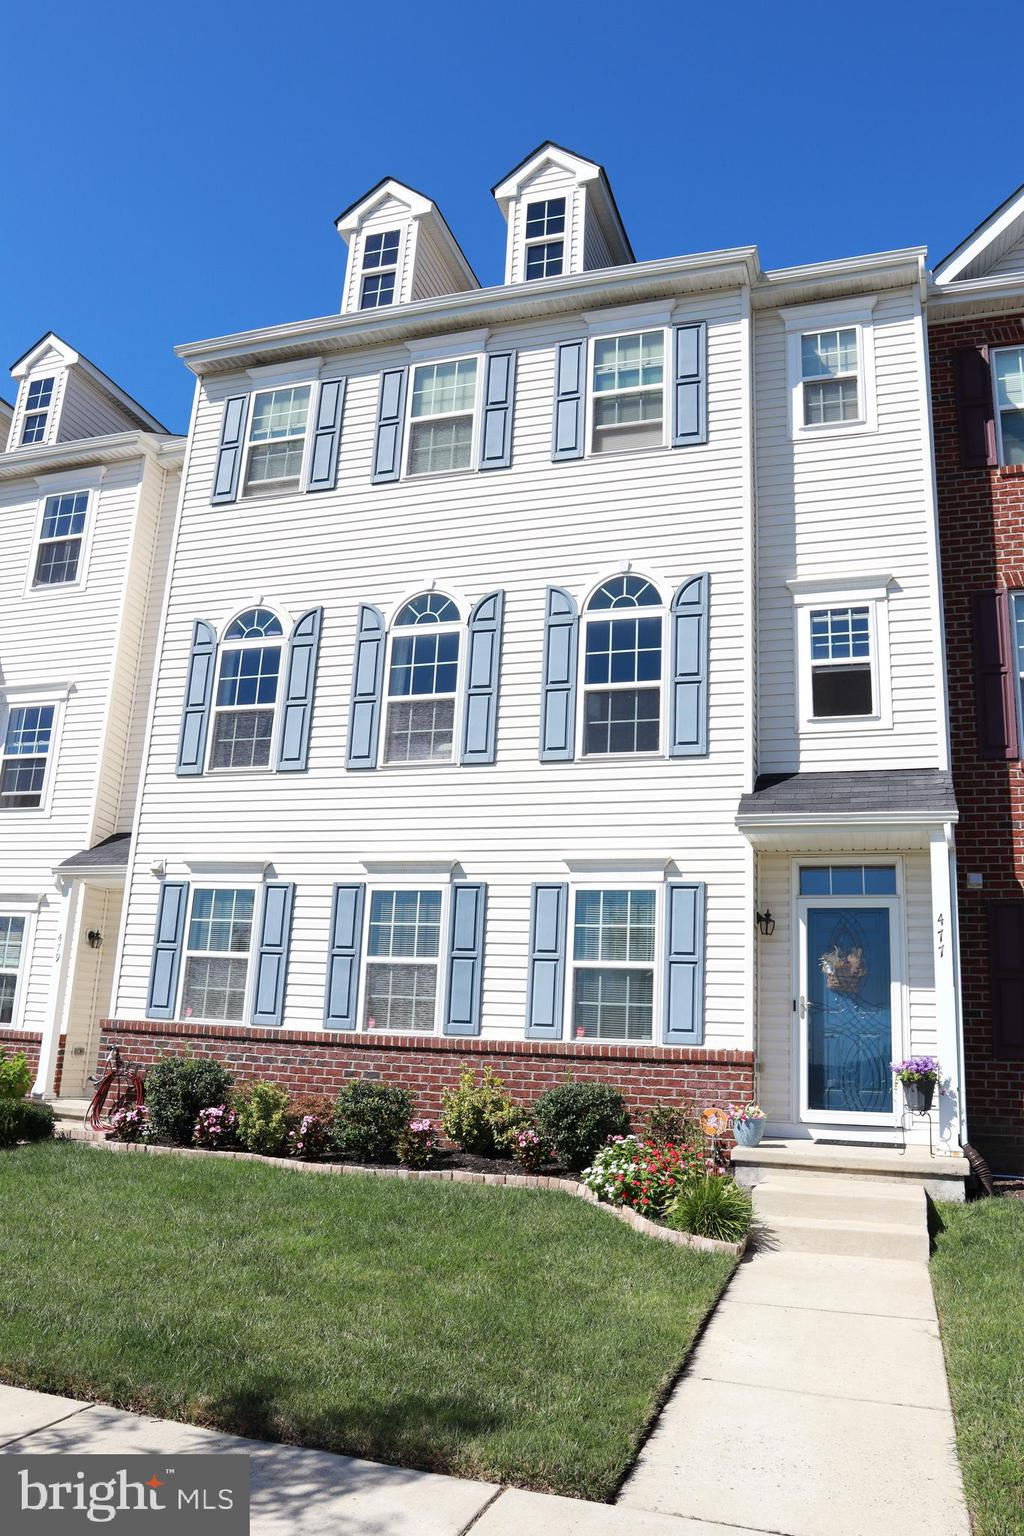 """You want Middletown, you got it!  Check out this amazing townhome which is within walking distance of all the action! You will be wowed from the front door!  On the first level you'll find an oversized (rear parking) garage with plenty of space for two large vehicles and extra room for storage.  There is also a room which could be used for entertainment or an office with an adjoining bathroom.  Follow the hardwood steps to the 2nd level where you will enjoy hardwood everywhere you look.  There is a gourmet kitchen with granite countertops, 42"""" cabinets and stainless appliances.  Take a step outside from the  sliders onto the private balcony which is  just perfect to enjoy on these cool autumn days.  There is also a spacious dining and living room space  and powder room. On the 3rd level the owner's suite offers lots of space with a large closet and en-suite 3 piece bath.   The soaking tub is the highlight of this beautiful space.   Just down the hall you will find a laundry area, 2 other large bedrooms and a full hall bath.  Come see all the reasons why you will want to call this house your new home!"""